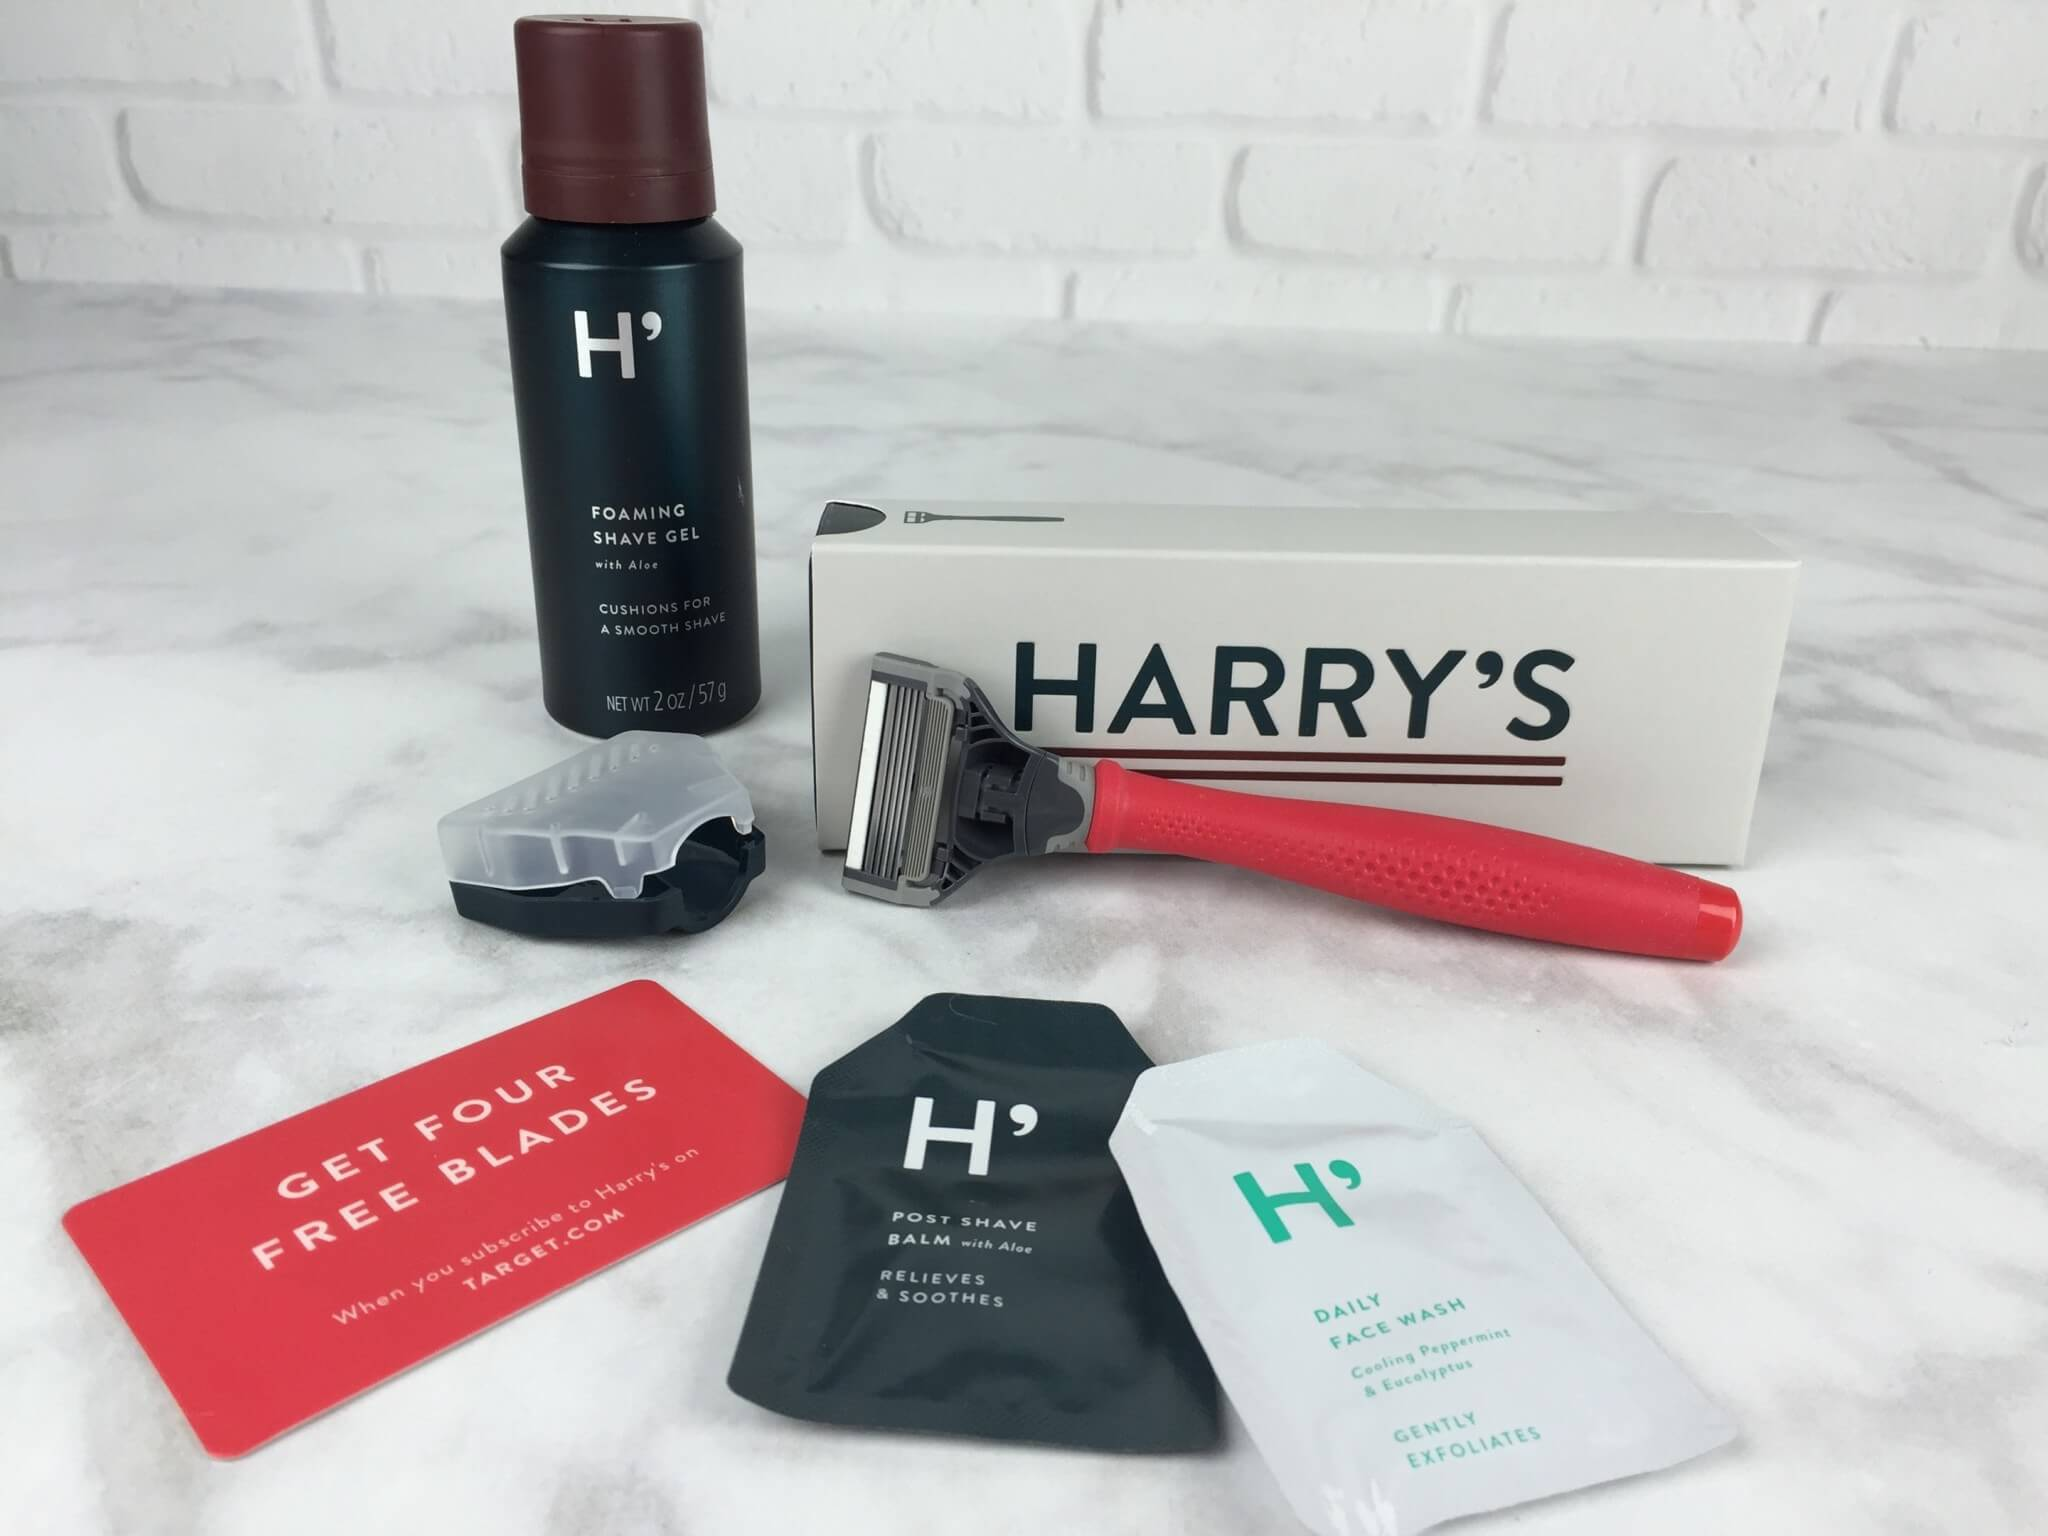 Where can you find a Harry's razors coupon code?